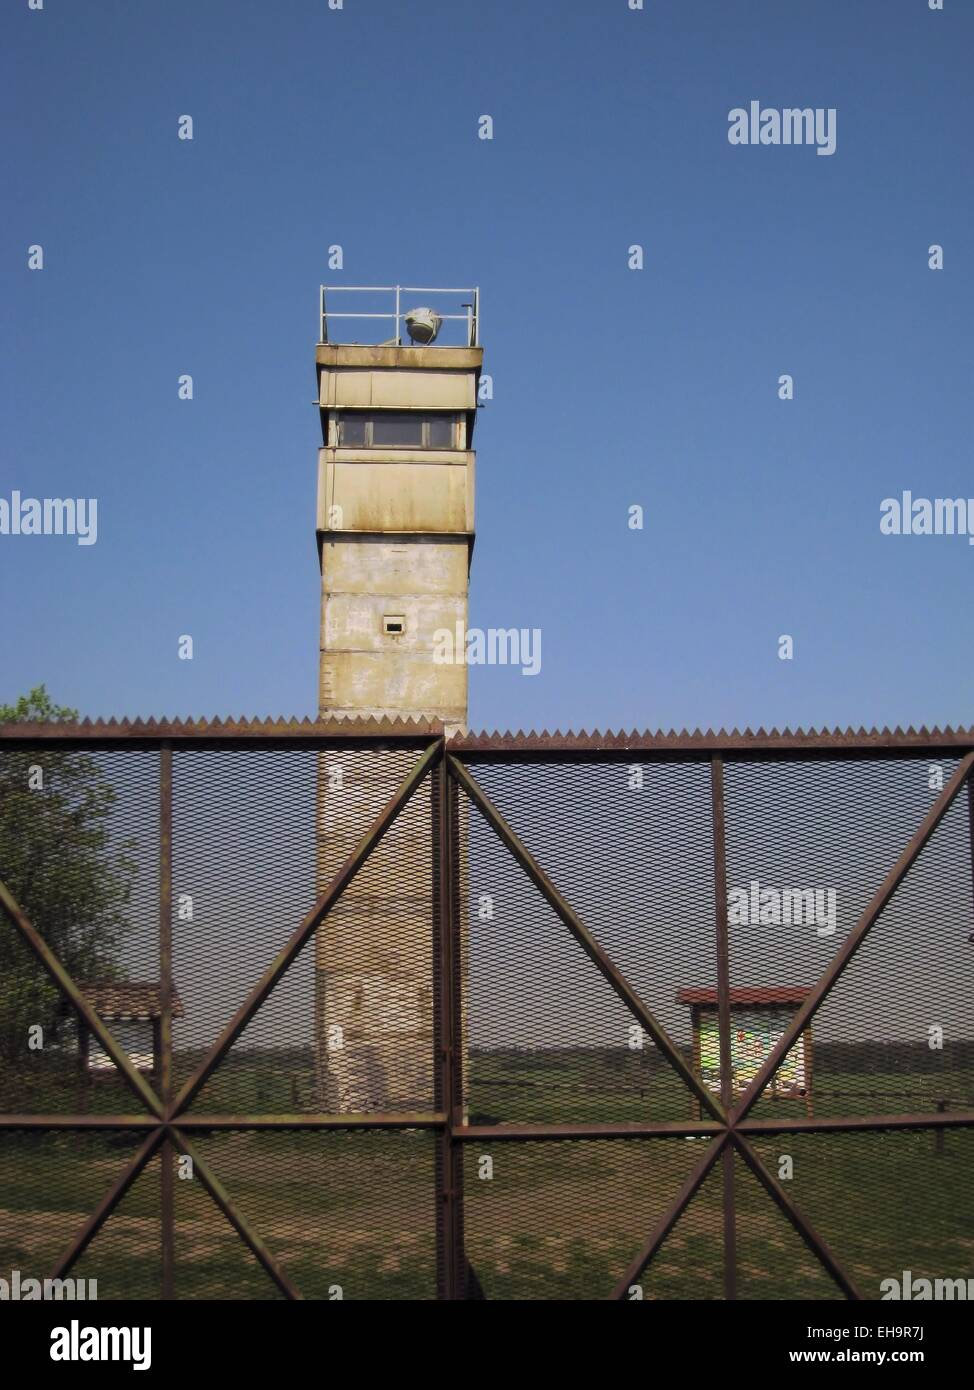 Watch Tower at West-East Border German Democratic Republic - Stock Image